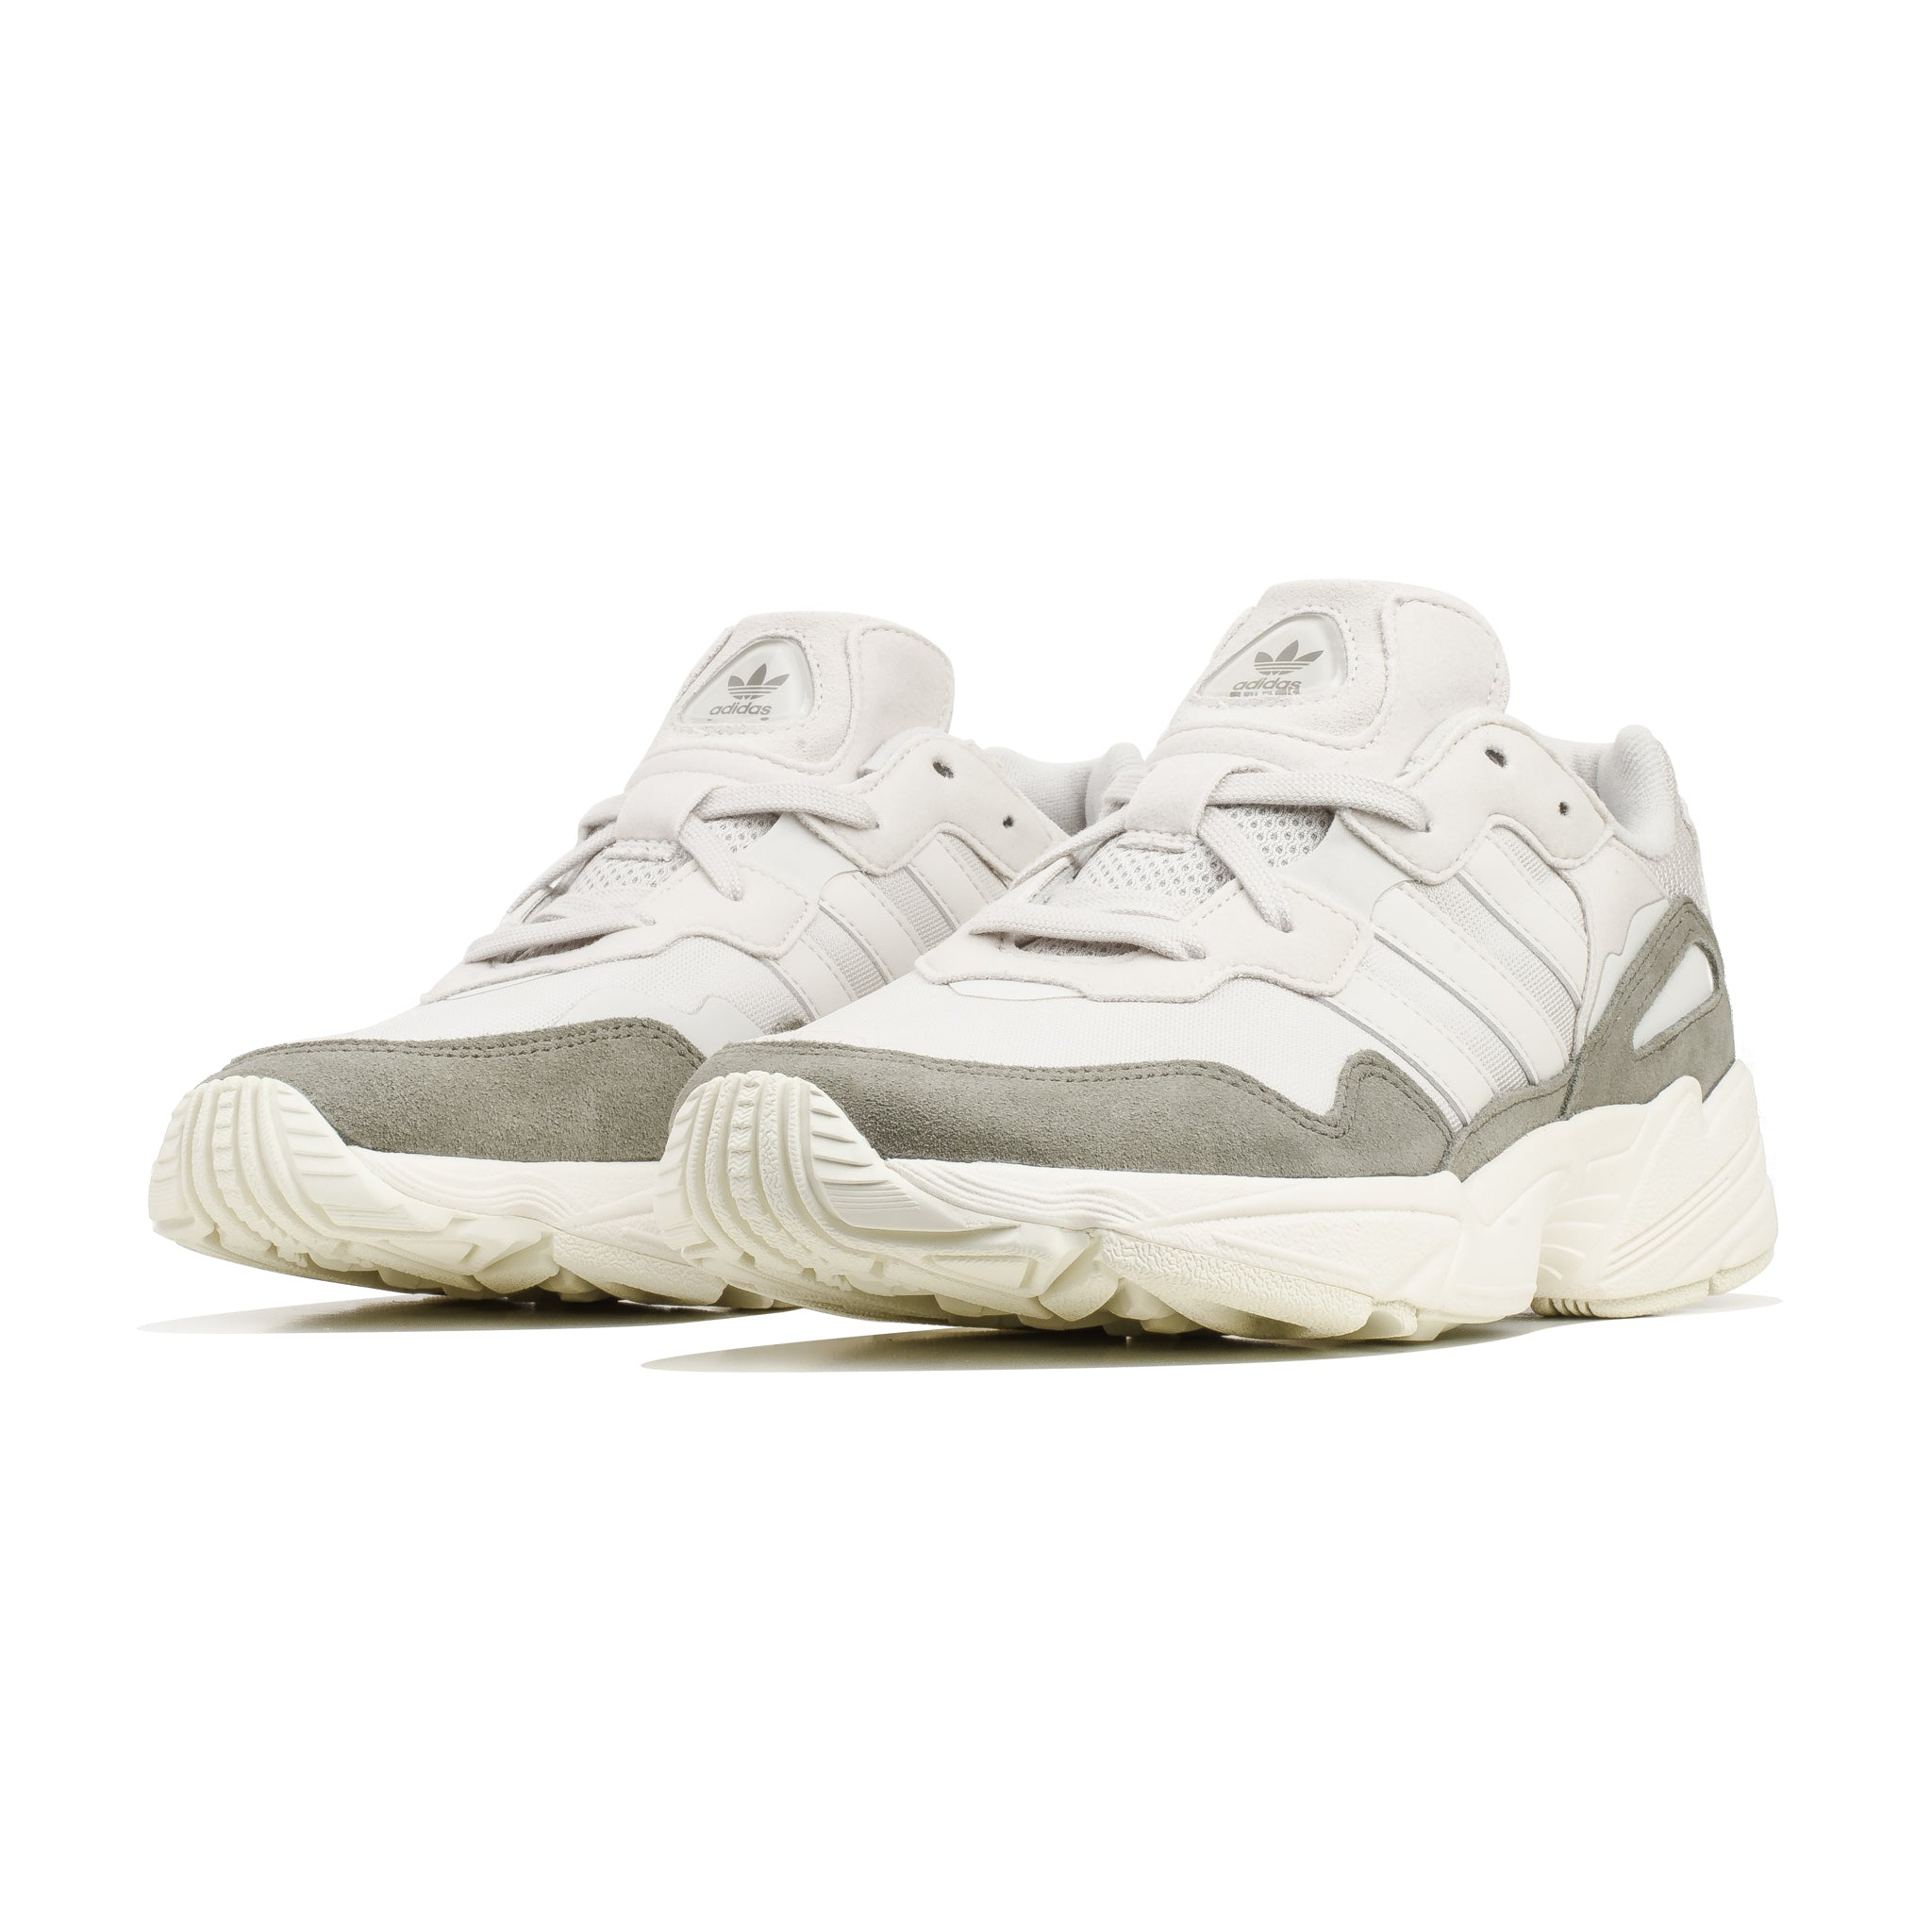 Adidas Yung 96 raw whiteraw whiteoff white ab 58,00